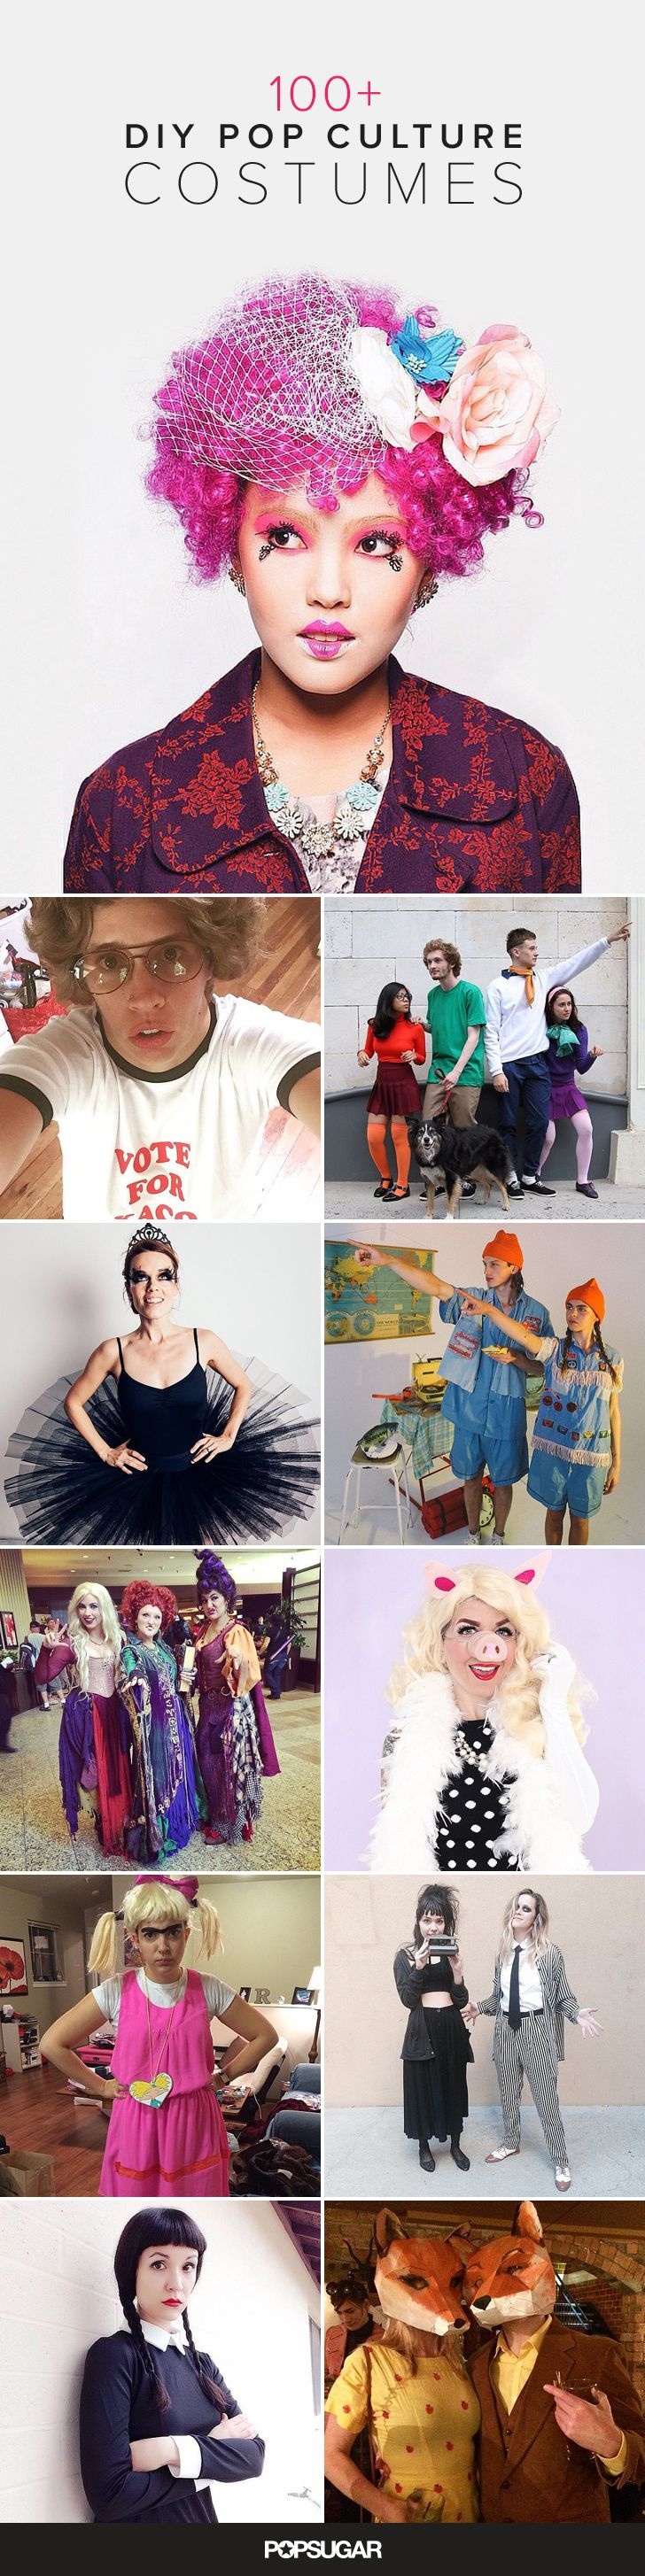 10 characters you can dress up as this halloween page 3 - The Easiest Place To Draw Inspiration For A Halloween Costumes This Year Is Right In Front